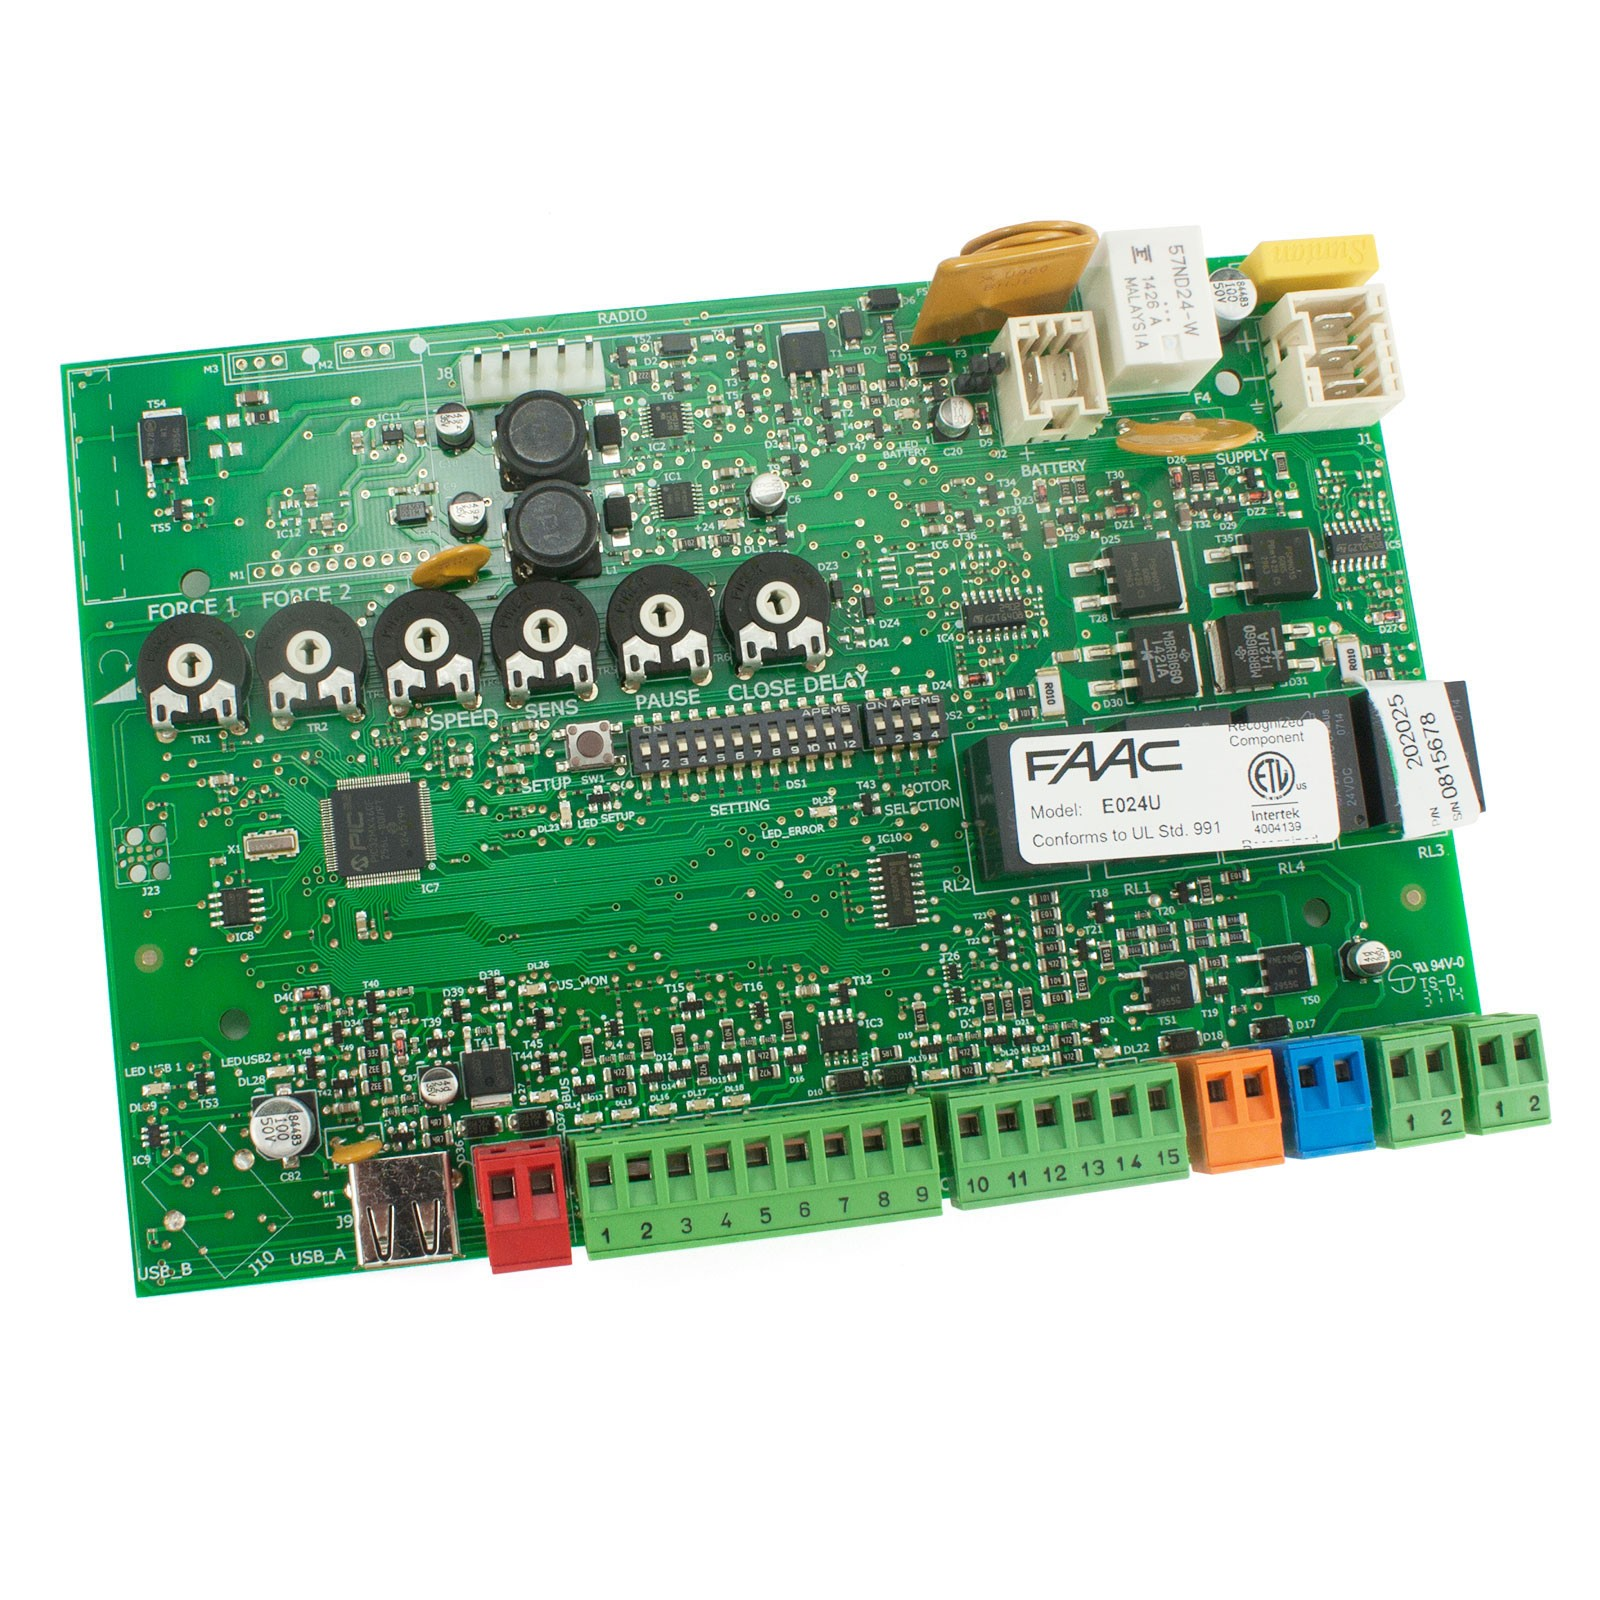 faac e024u control board e024u control board faac 202025 fast gate openers faac 770 wiring diagram at bayanpartner.co